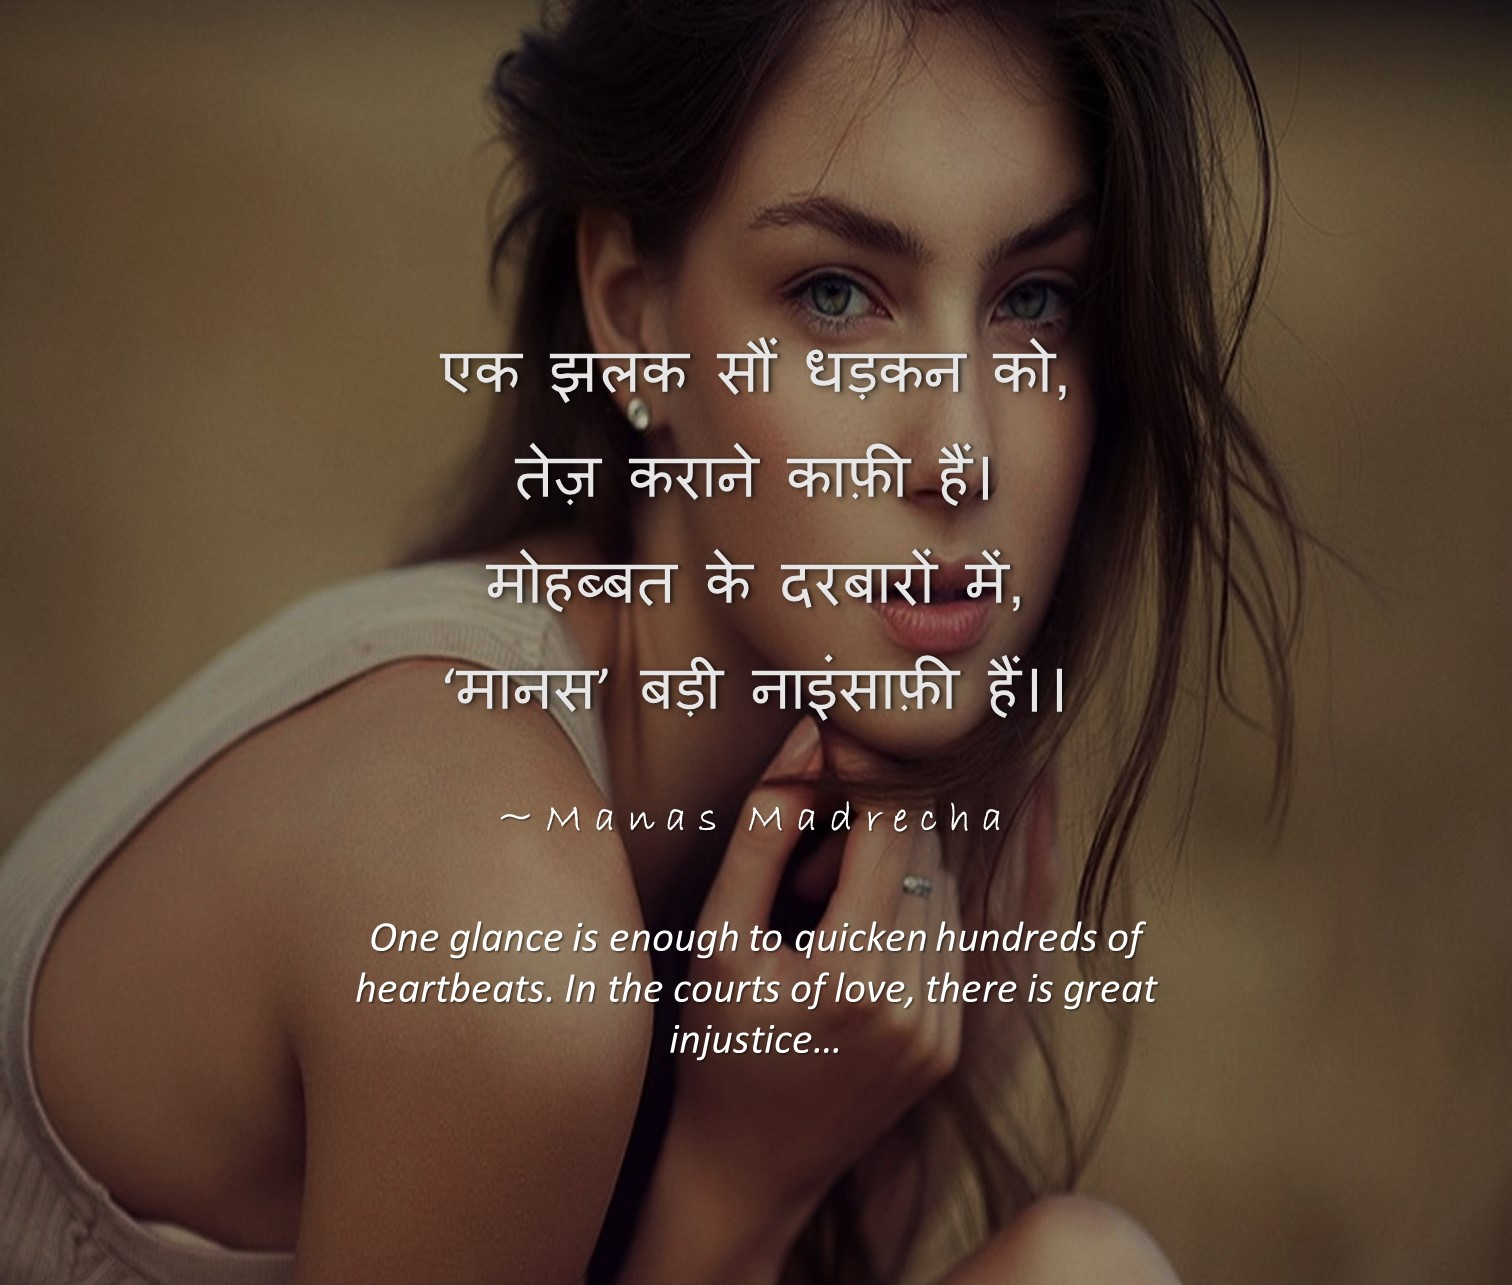 poem on love, Manas Madrecha, Manas Madrecha poems, poems by Manas Madrecha, Manas Madrecha quotes, love quotes, quotes on love, Manas Madrecha blog, simplifying universe, teenage quotes, teenage poem, youth poem, youth quotes, quotes on youth, romantic poem, beautiful girl, hot girl, girl looking, cute girl, pretty girl, blue eyes, girl looking straight